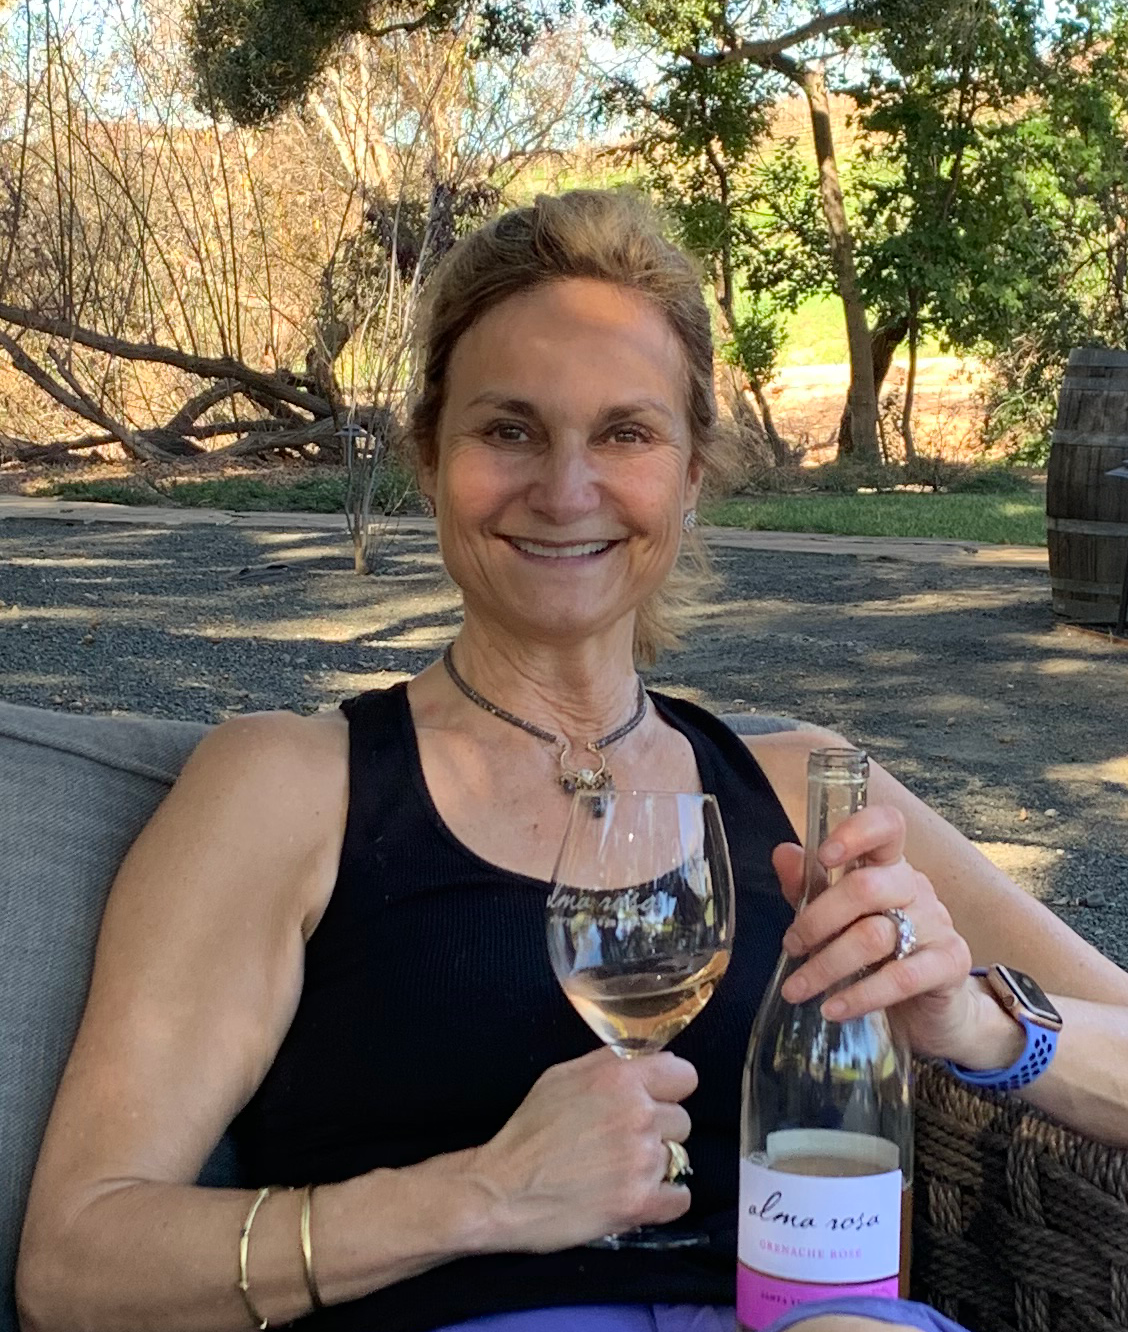 https://almarosawinery.com/wp-content/uploads/2020/02/debra_small.png